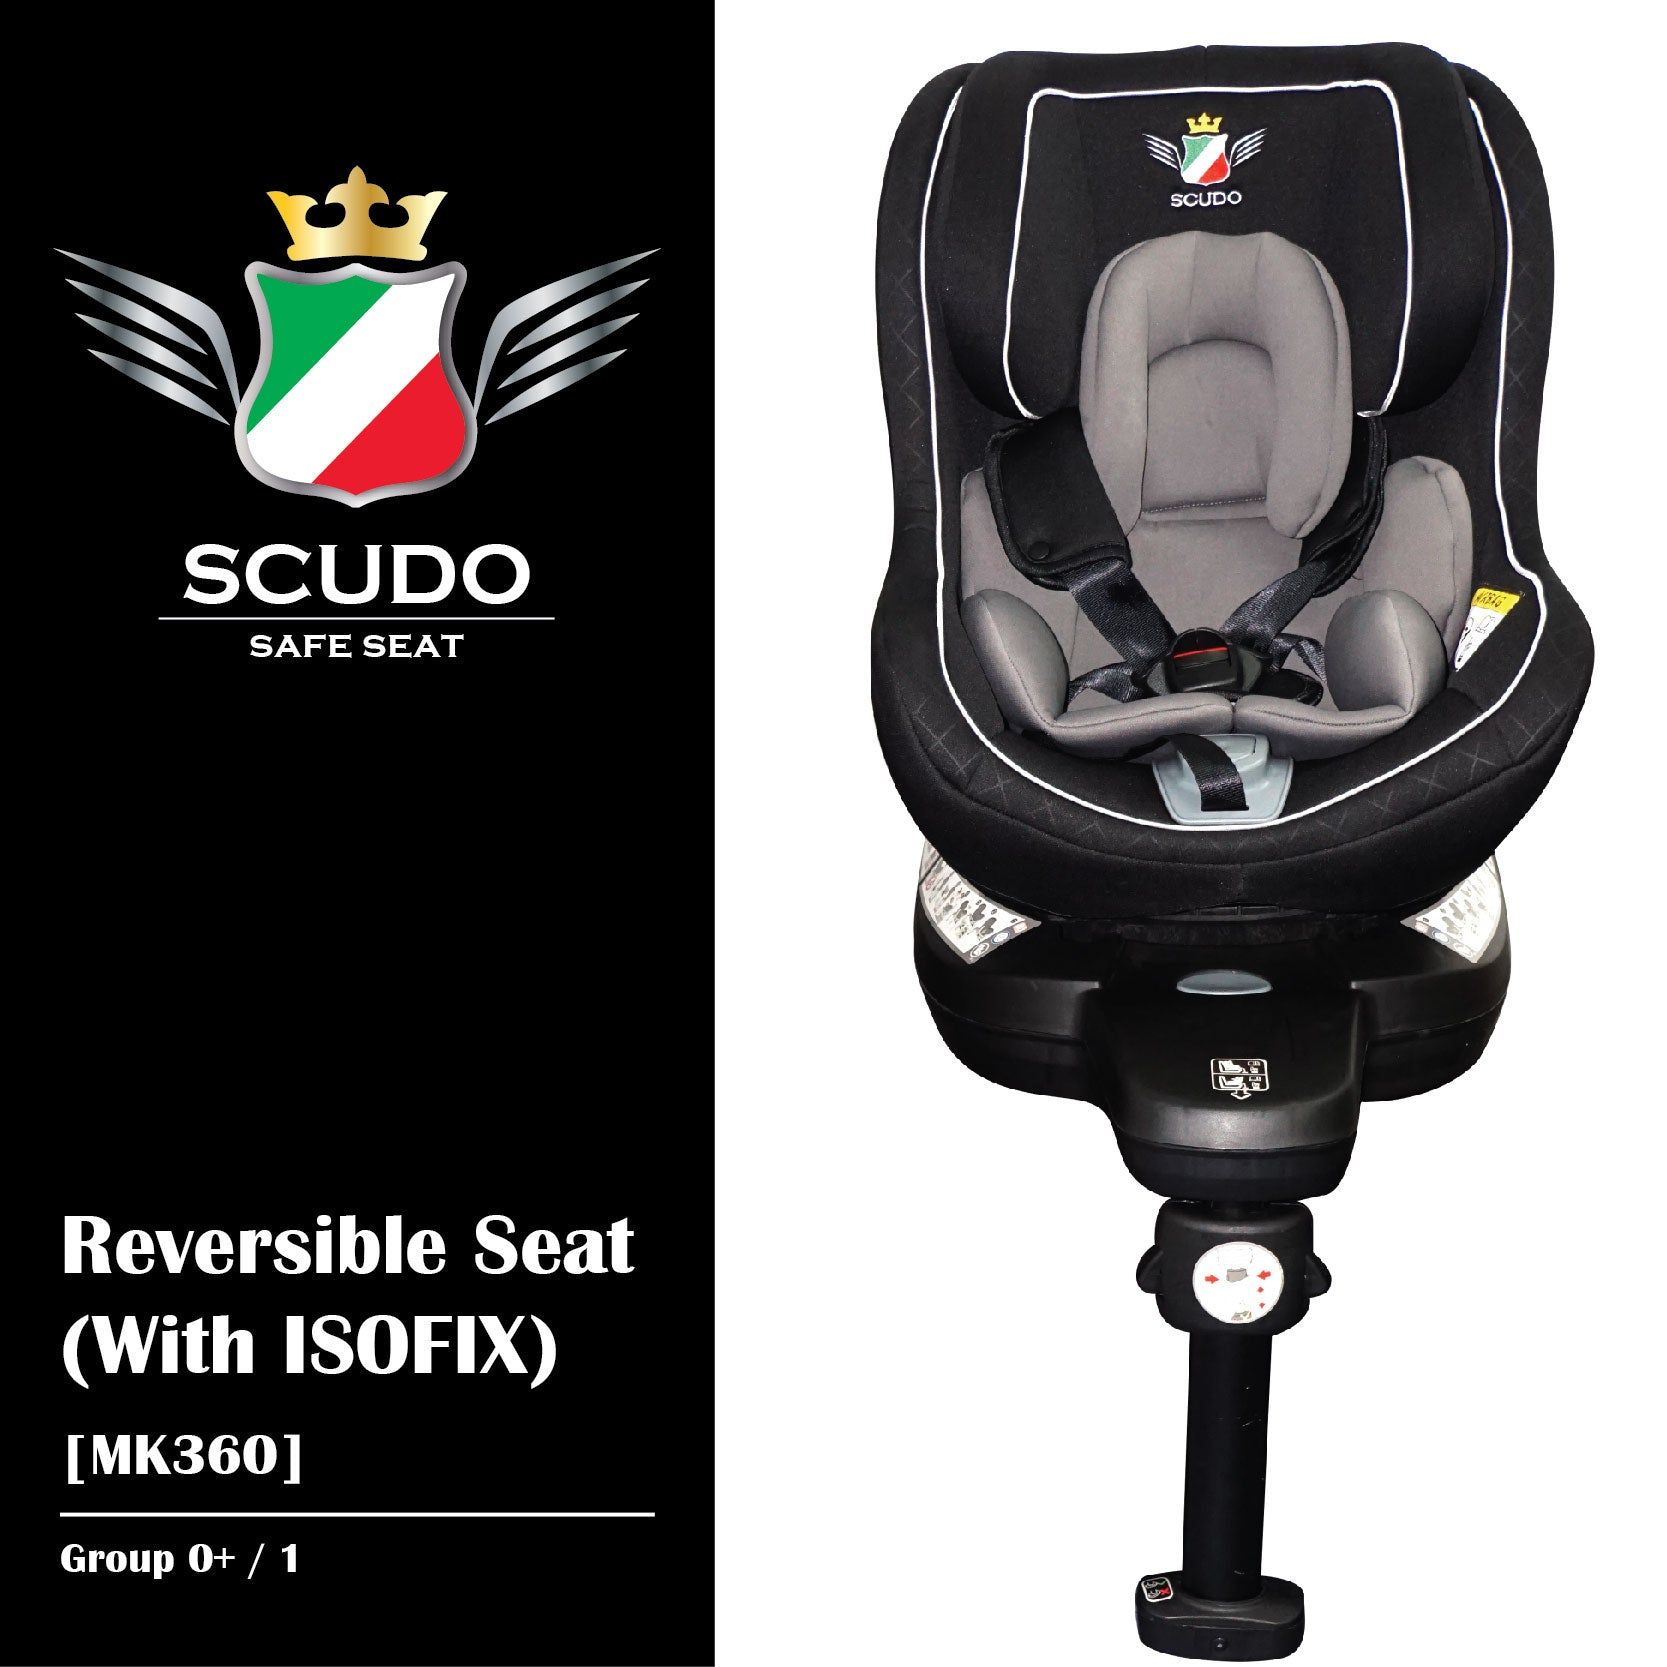 [MK360-GY] SCUDO Reversible Seat (With ISOFIX) - GREY